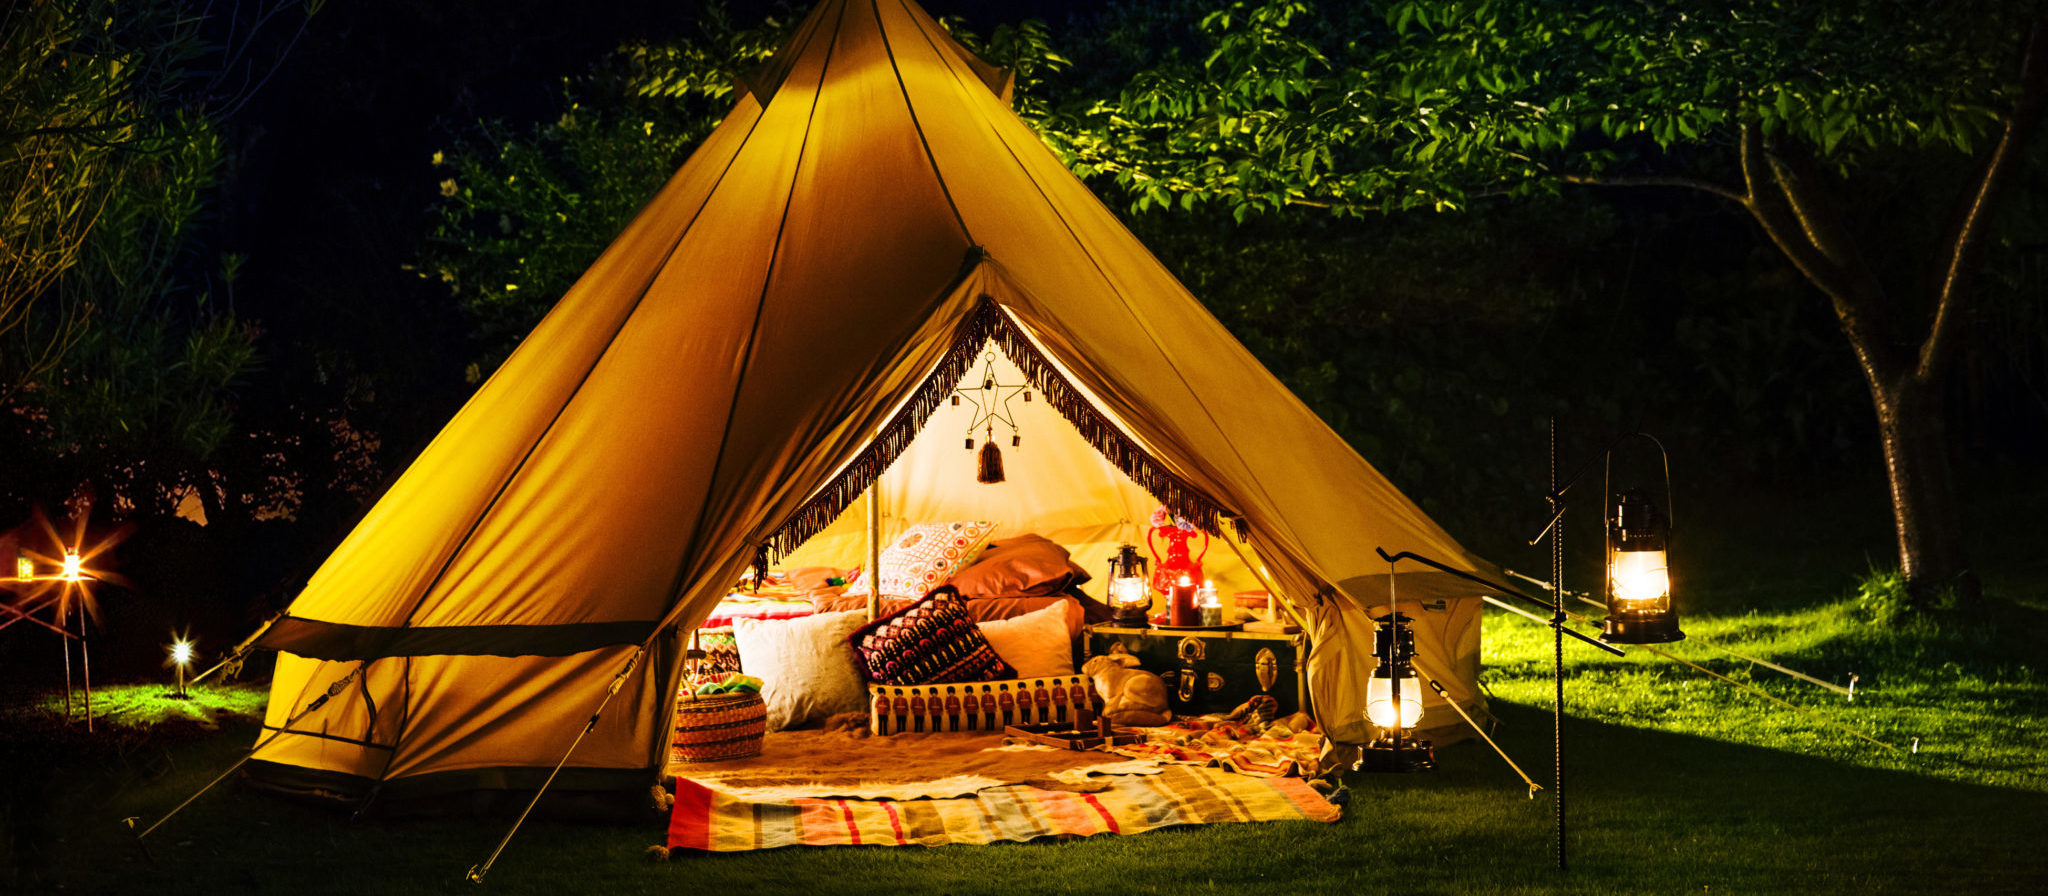 Best Sheets for Camping